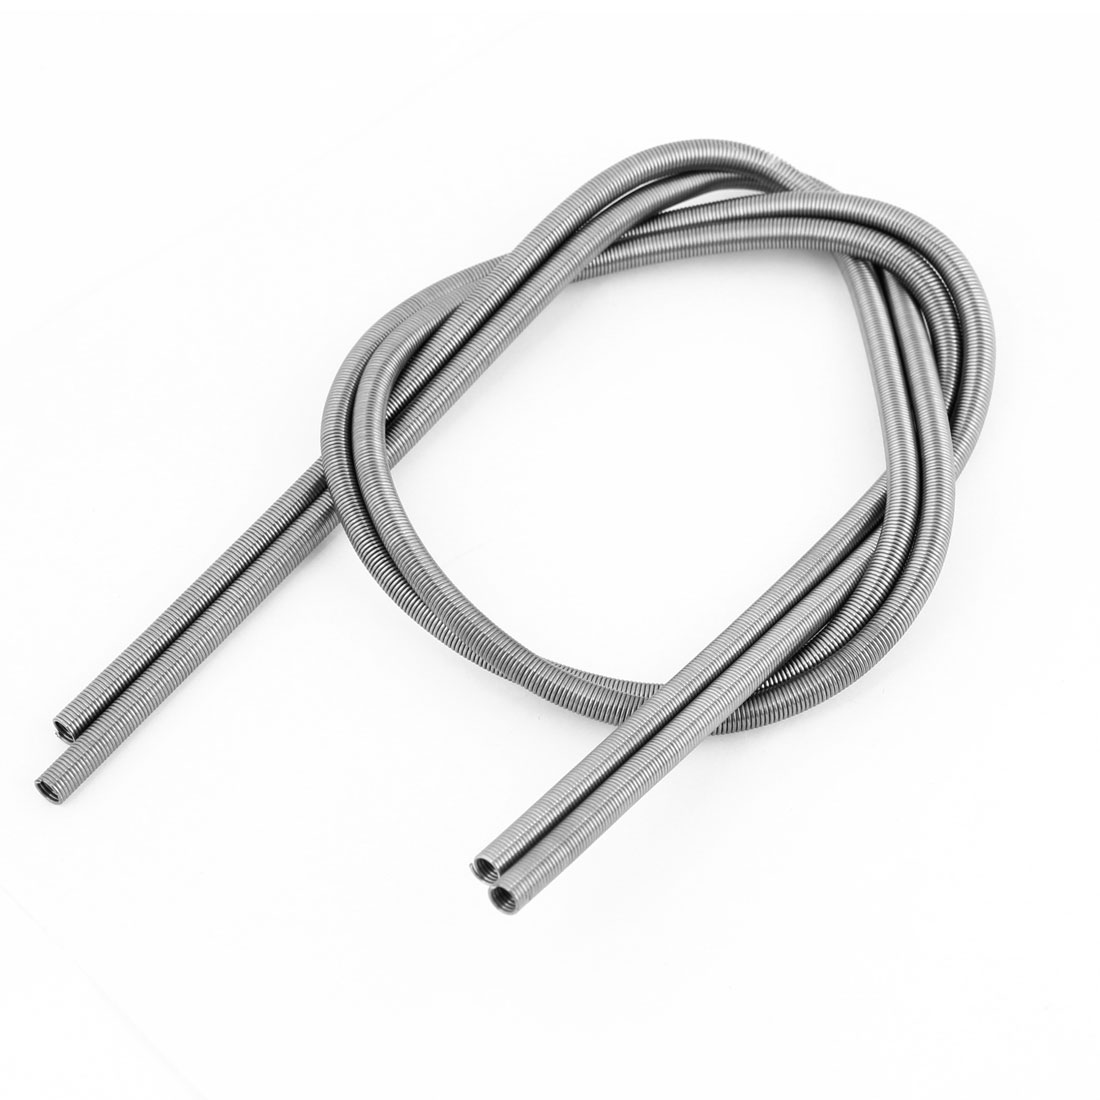 2-Pcs-58cm-Long-Silver-Tone-Flexible-Heat-Element-Wires-220V-1500W